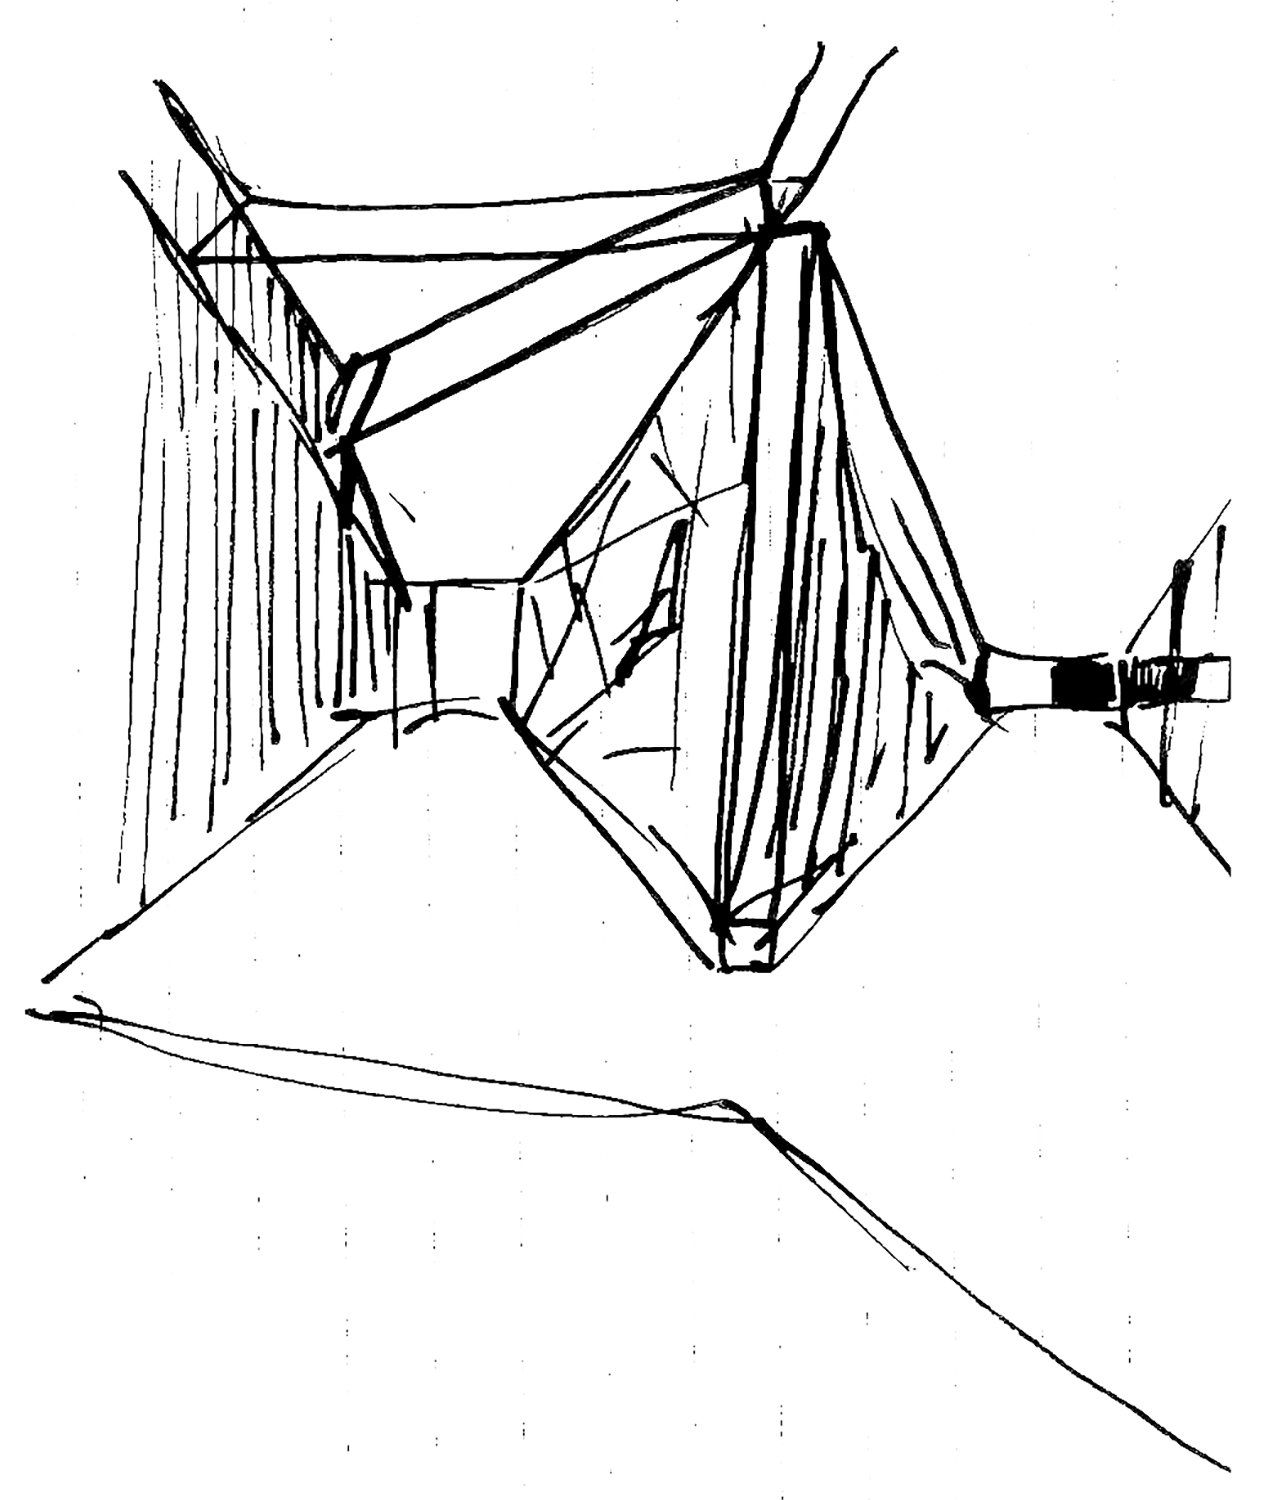 Sketch of the stereoscopic view of the spaces 3ndy Studio}